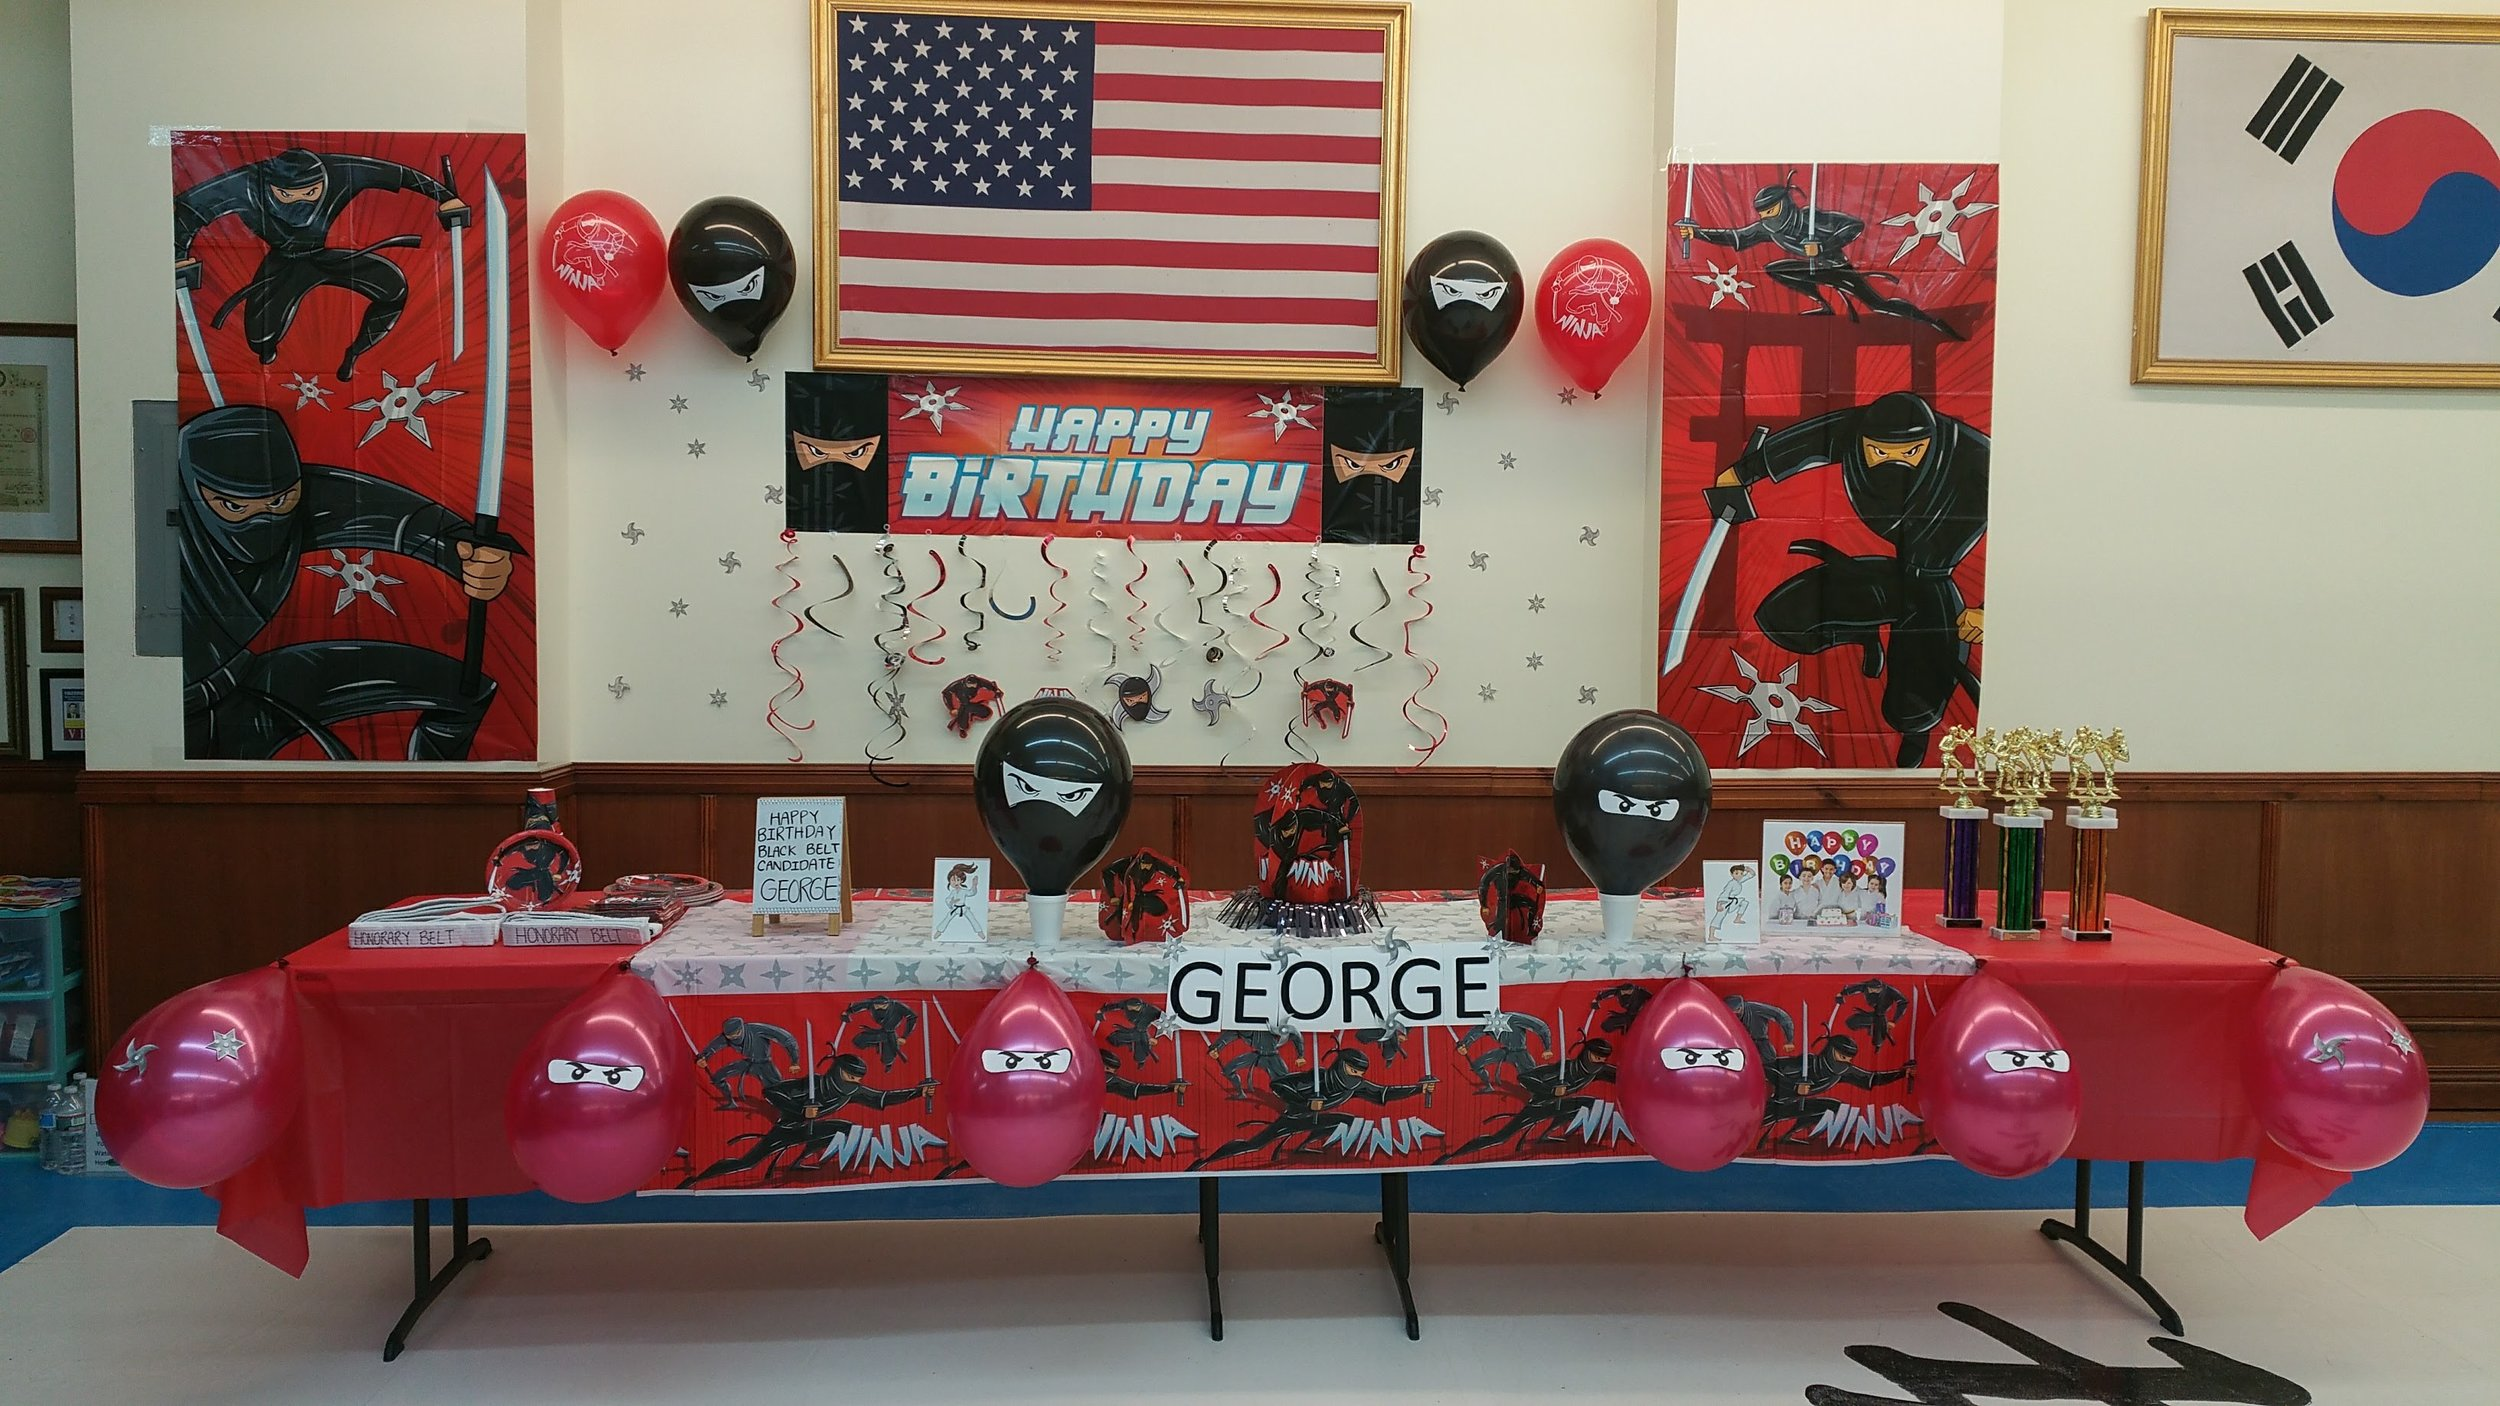 Ninja Themed Birthday Party for George!